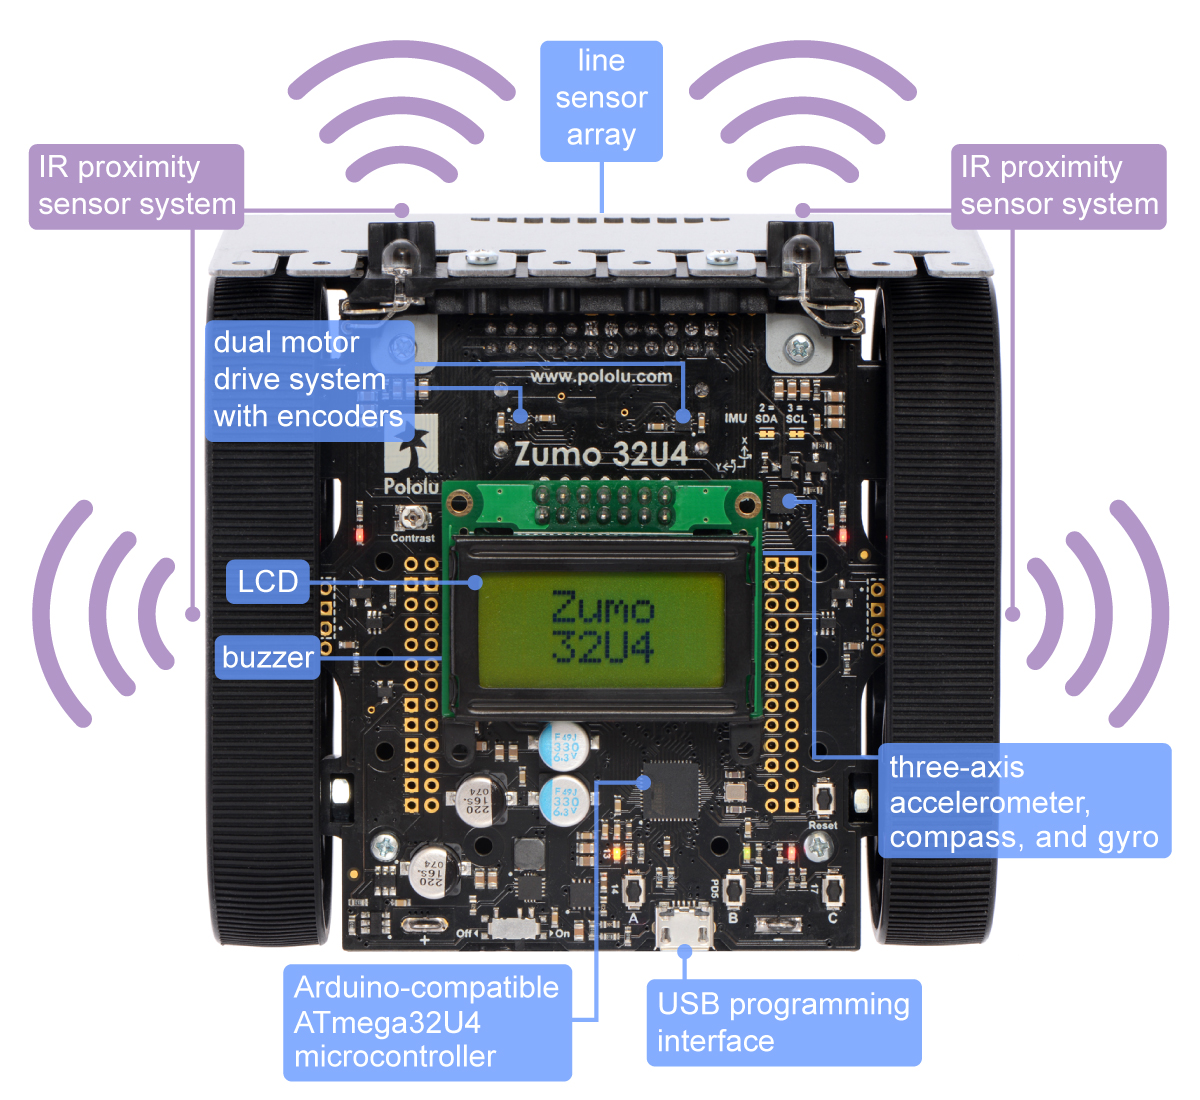 Pololu Zumo 32u4 Robot Users Guide Circuit Or The Drivers Themselves Here Is Its From Silicon 1 Overview